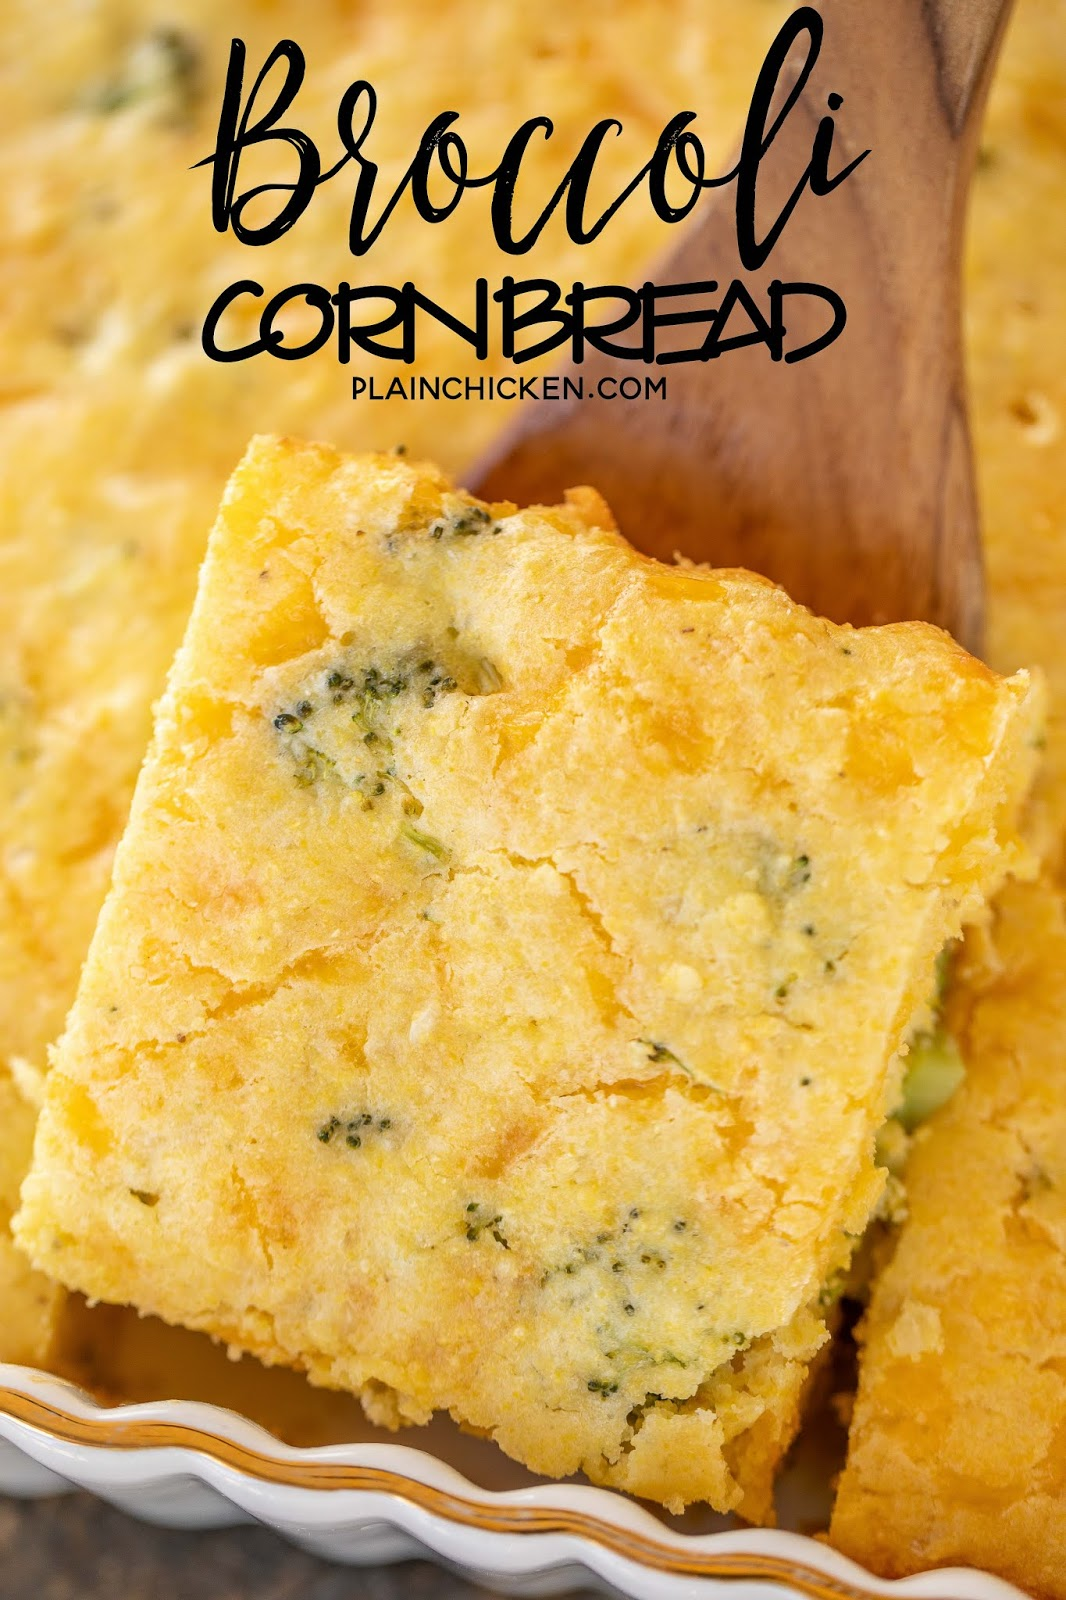 Taking cornbread slice out of baking dish